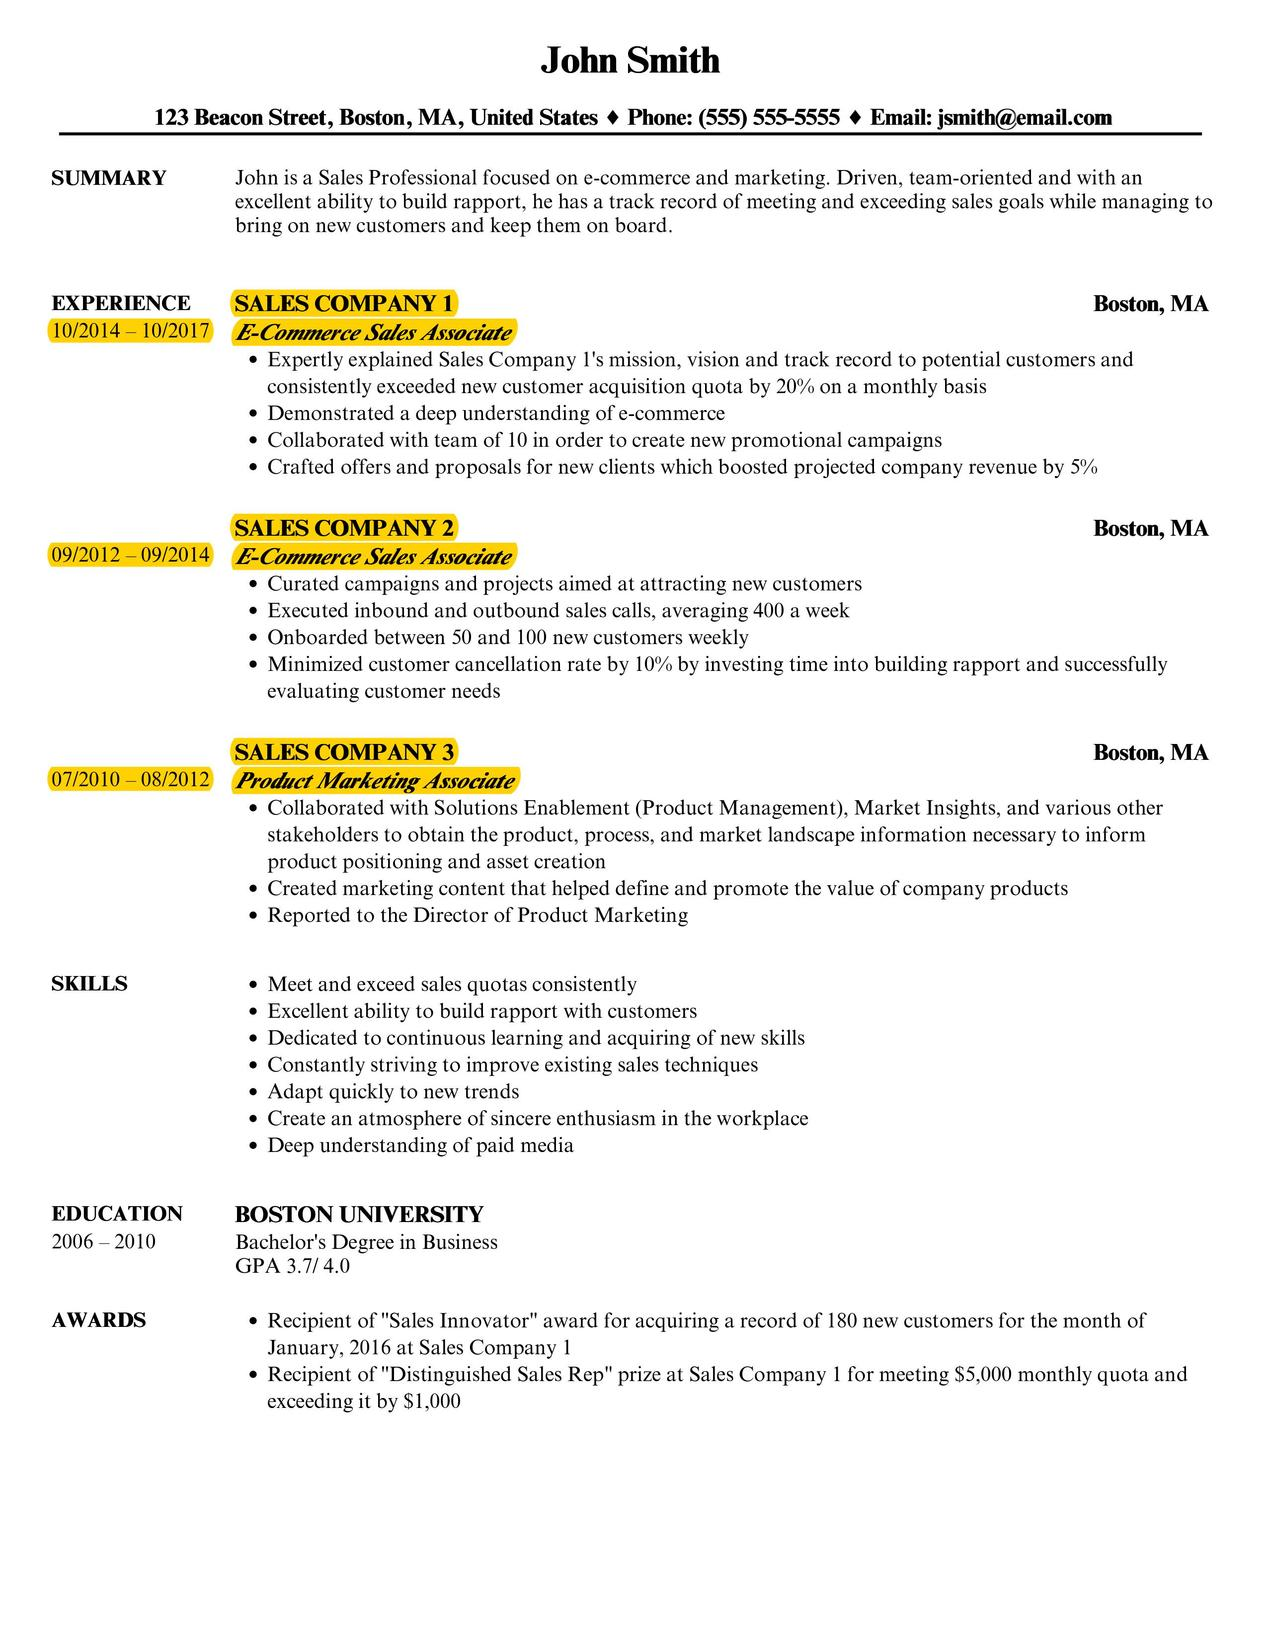 The Best Resume Format Reverse Chronological Velvet Jobs